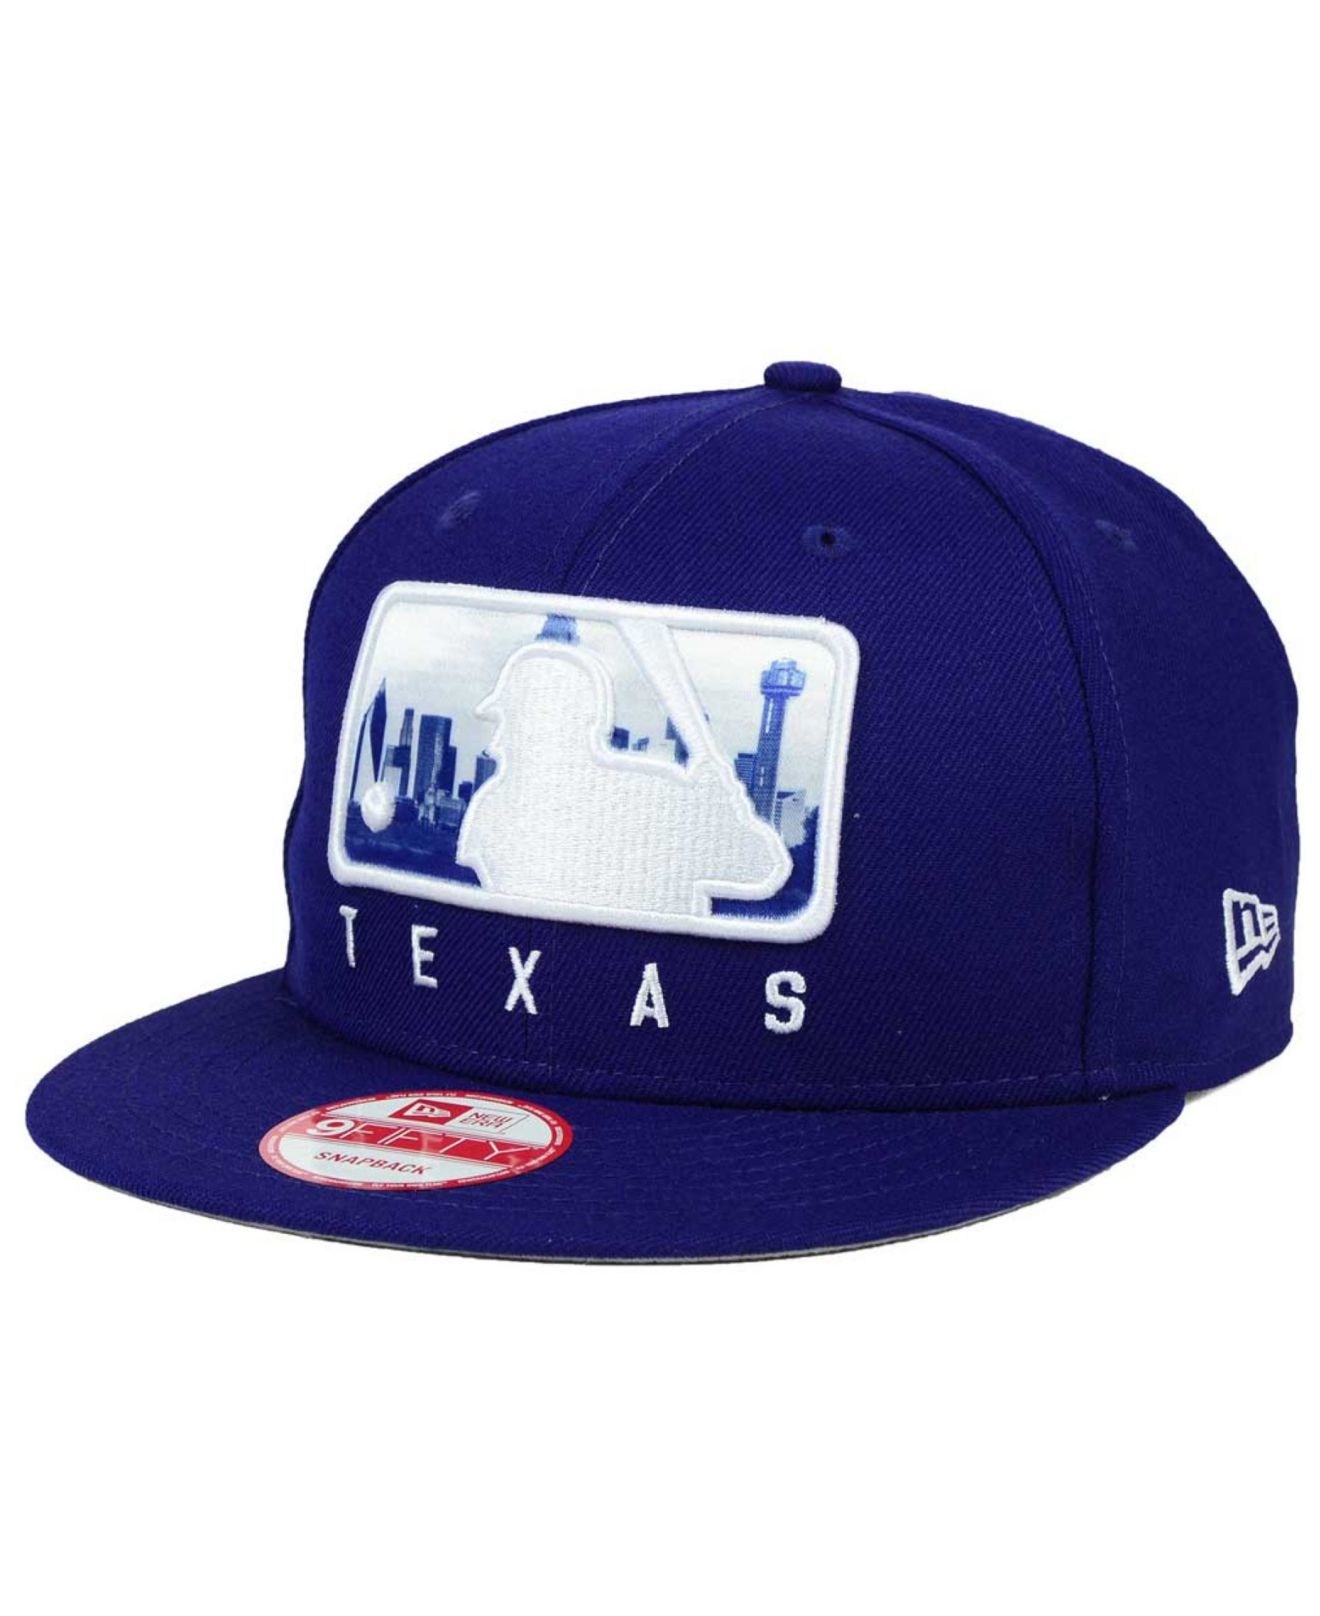 5860f521326 uk texas rangers mesh trucker hat quiz 7eb6e 29719